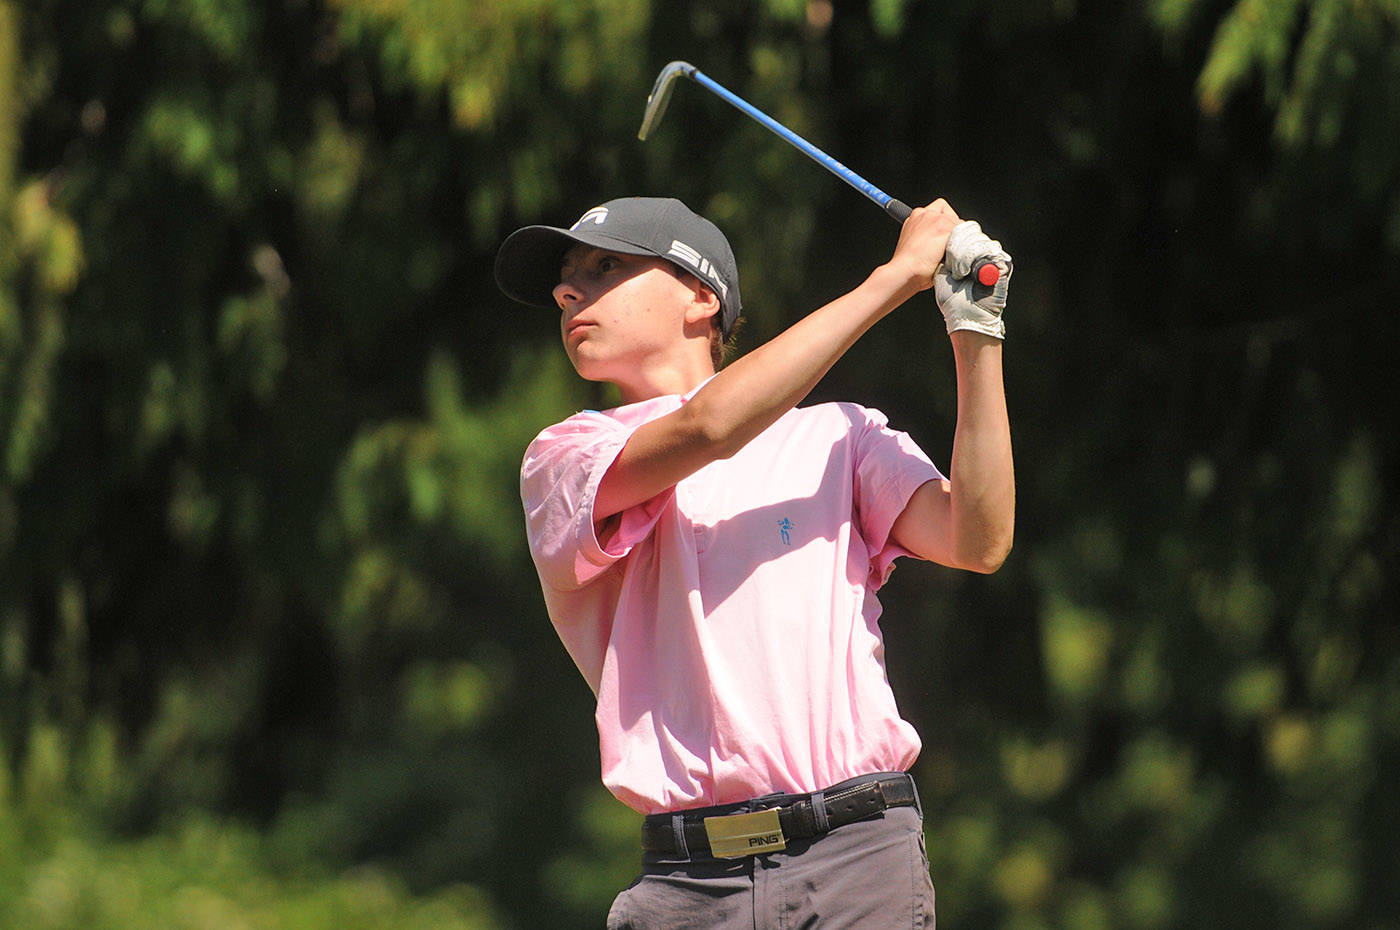 Chilliwack's Joe Corke tees off from the fourth hole at Chilliwack Golf Club during the final round of the 2021 Optimist Fred Wellsby Junior Divot golf tournament on Thursday, July 15, 2021. (Jenna Hauck/ Chilliwack Progress)